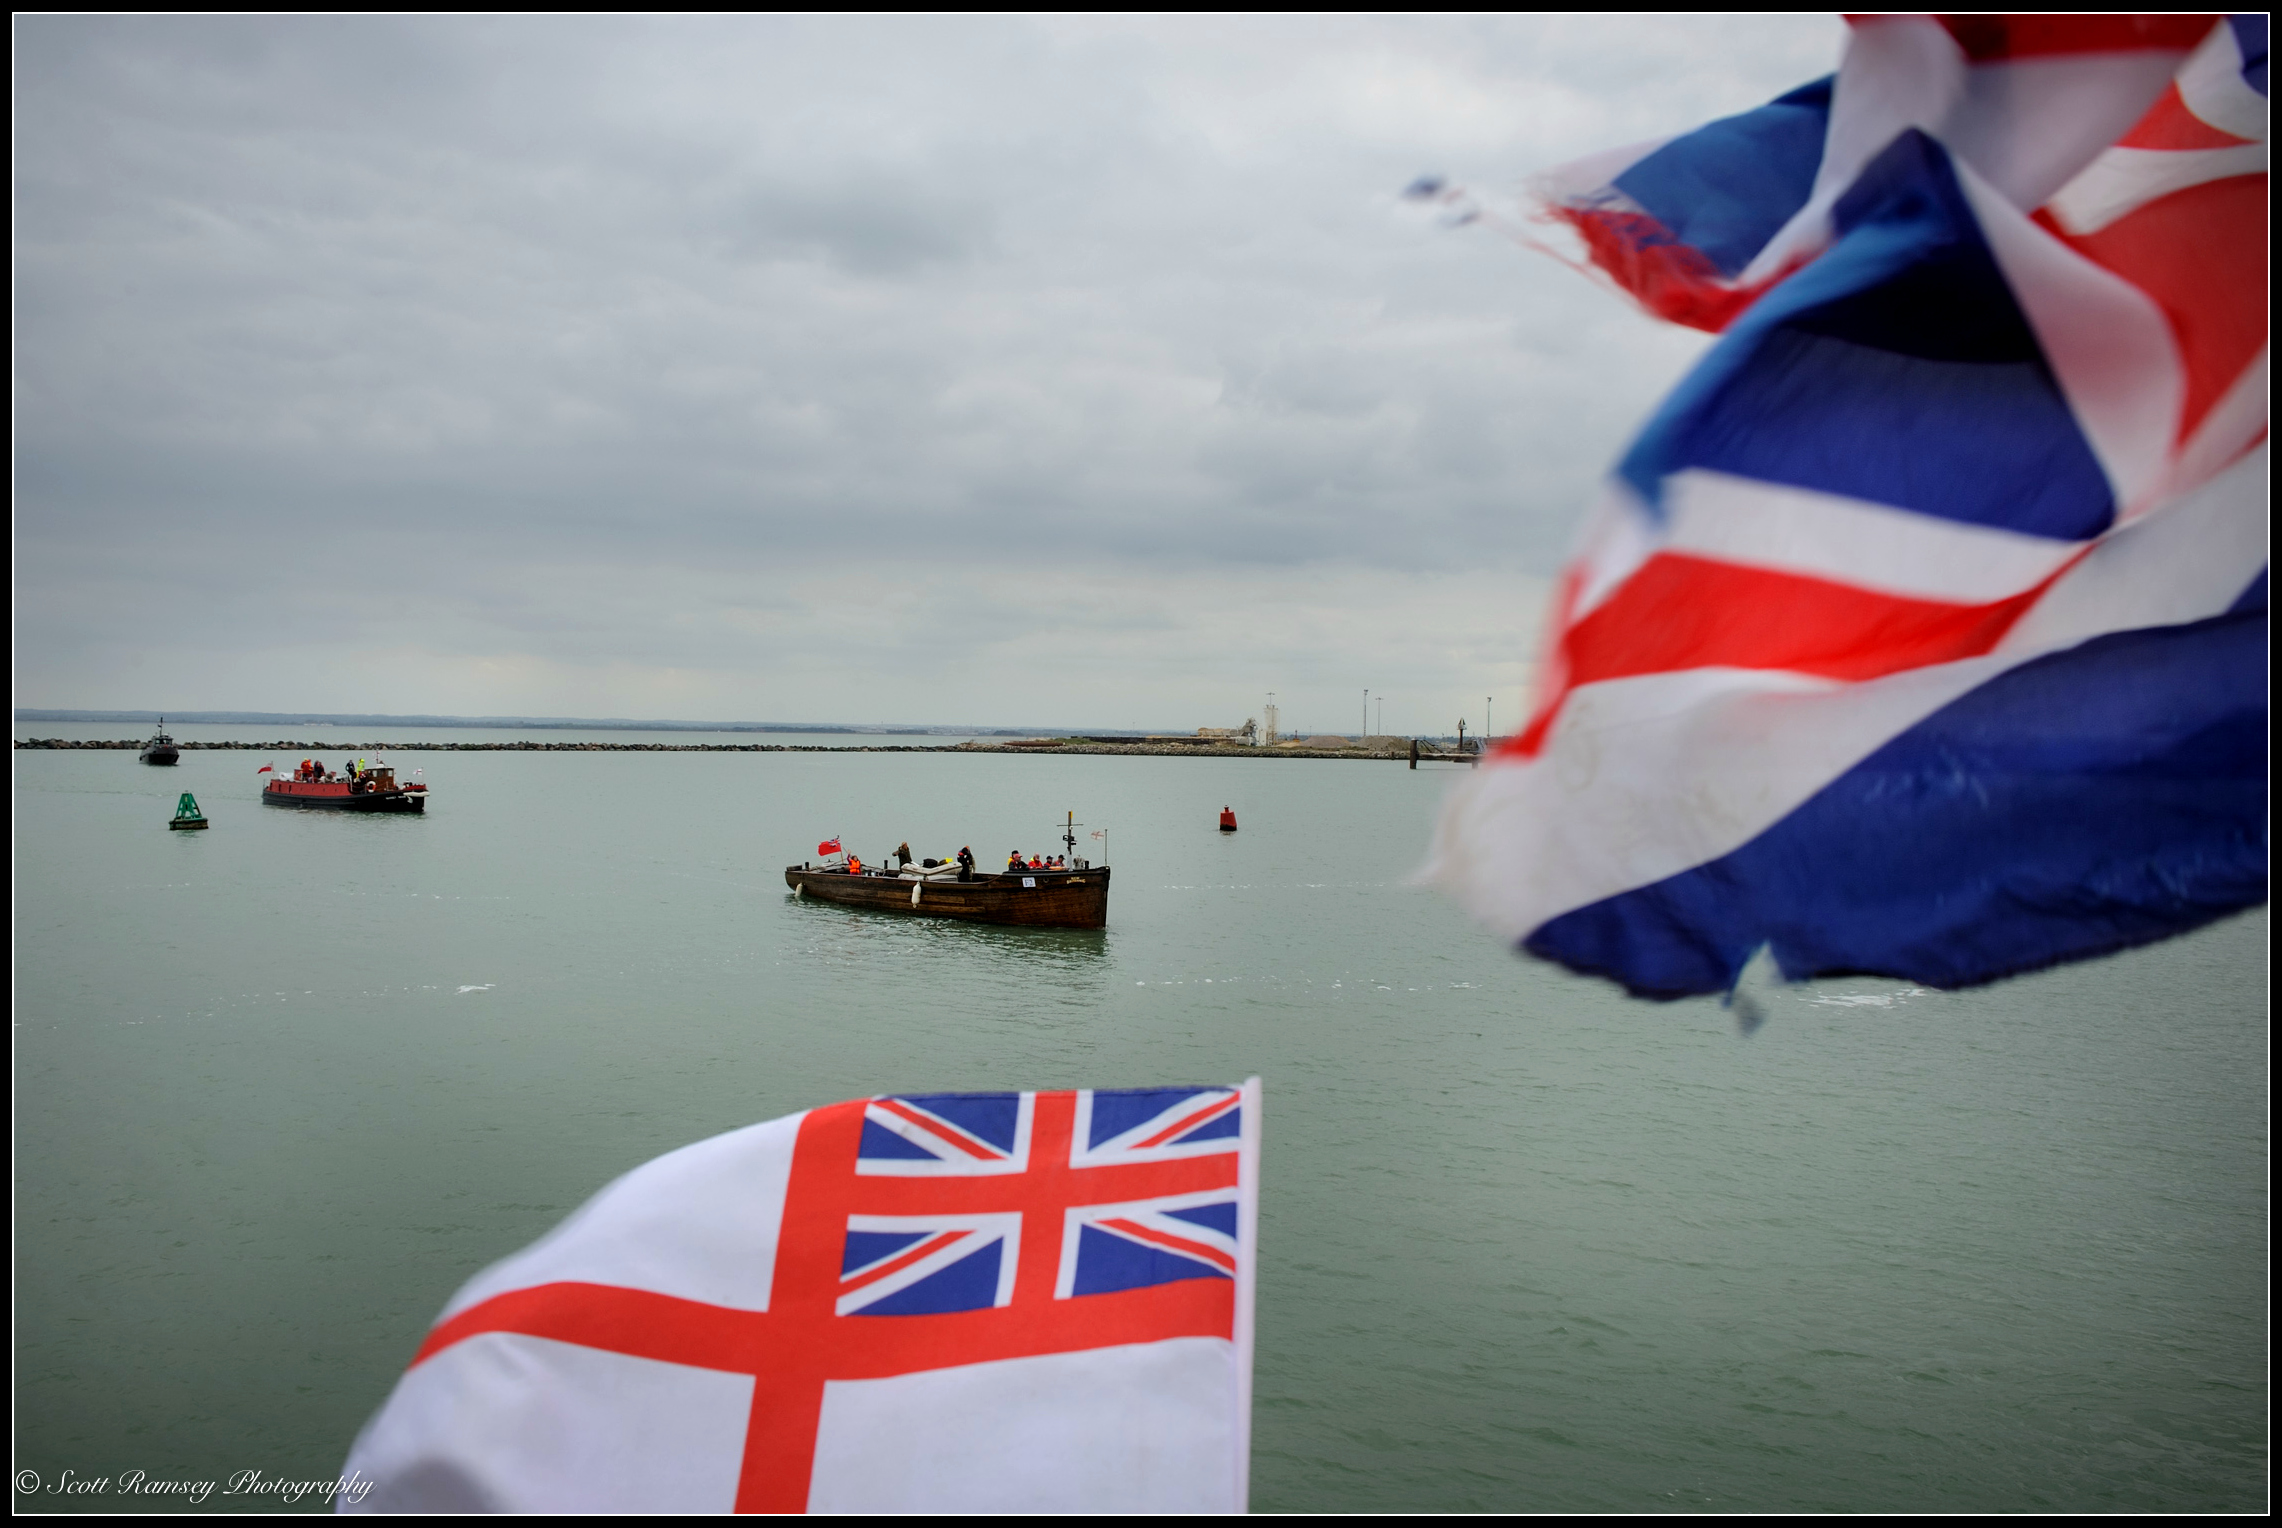 The New Britannic, a 1930 passenger boat and one of the original Bunkirk Little Ships, can be seen through the flags being wavSpectators wave flags and cheer as the Dunkirk Little Ships (centre - the New Britannic a passenger boat built in 1930) return to the Royal Harbour Marina Ramsgate during a weekend of events to commemorate the 75th anniversary of Operation Dynamo.©Scott Ramsey Photography